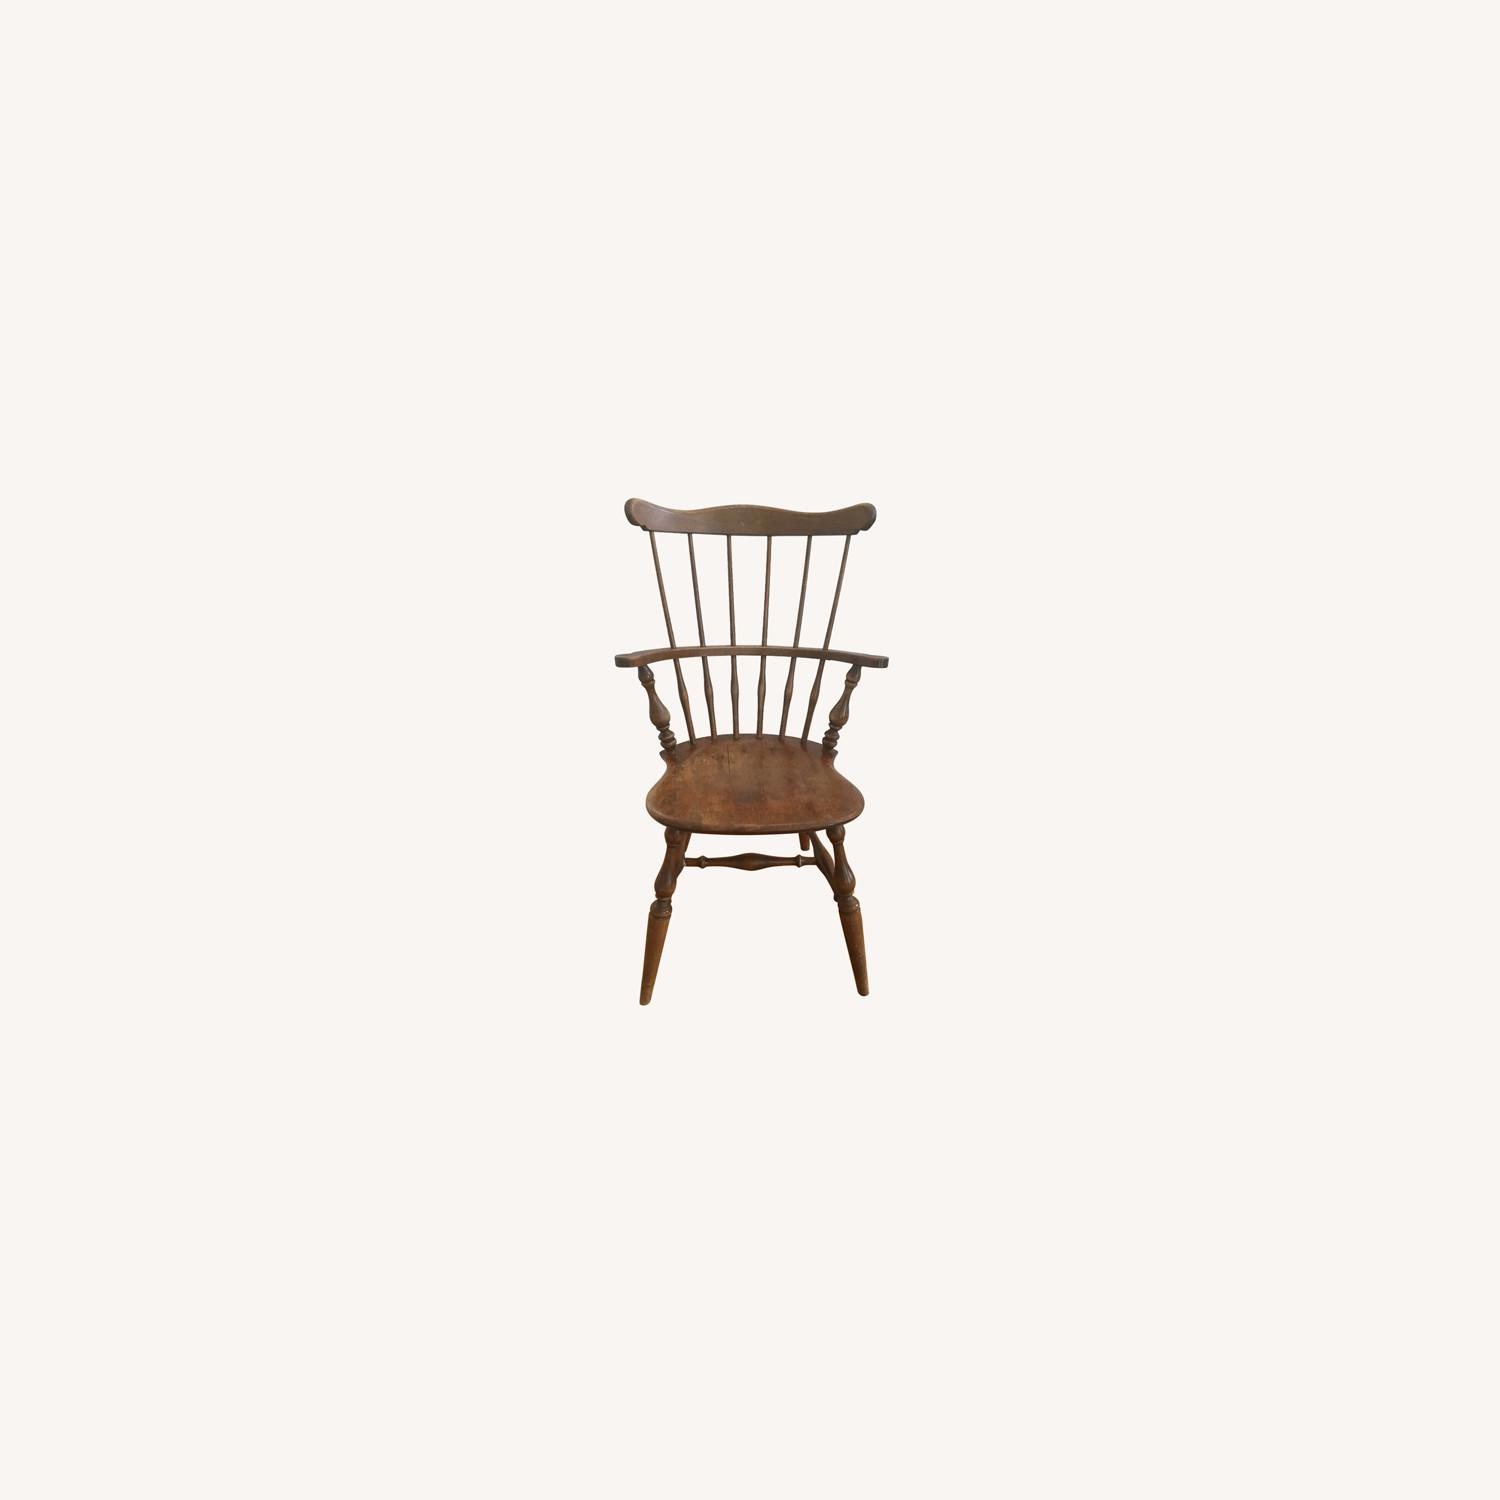 Ethan Allen Tall Comb Back Chair - image-0